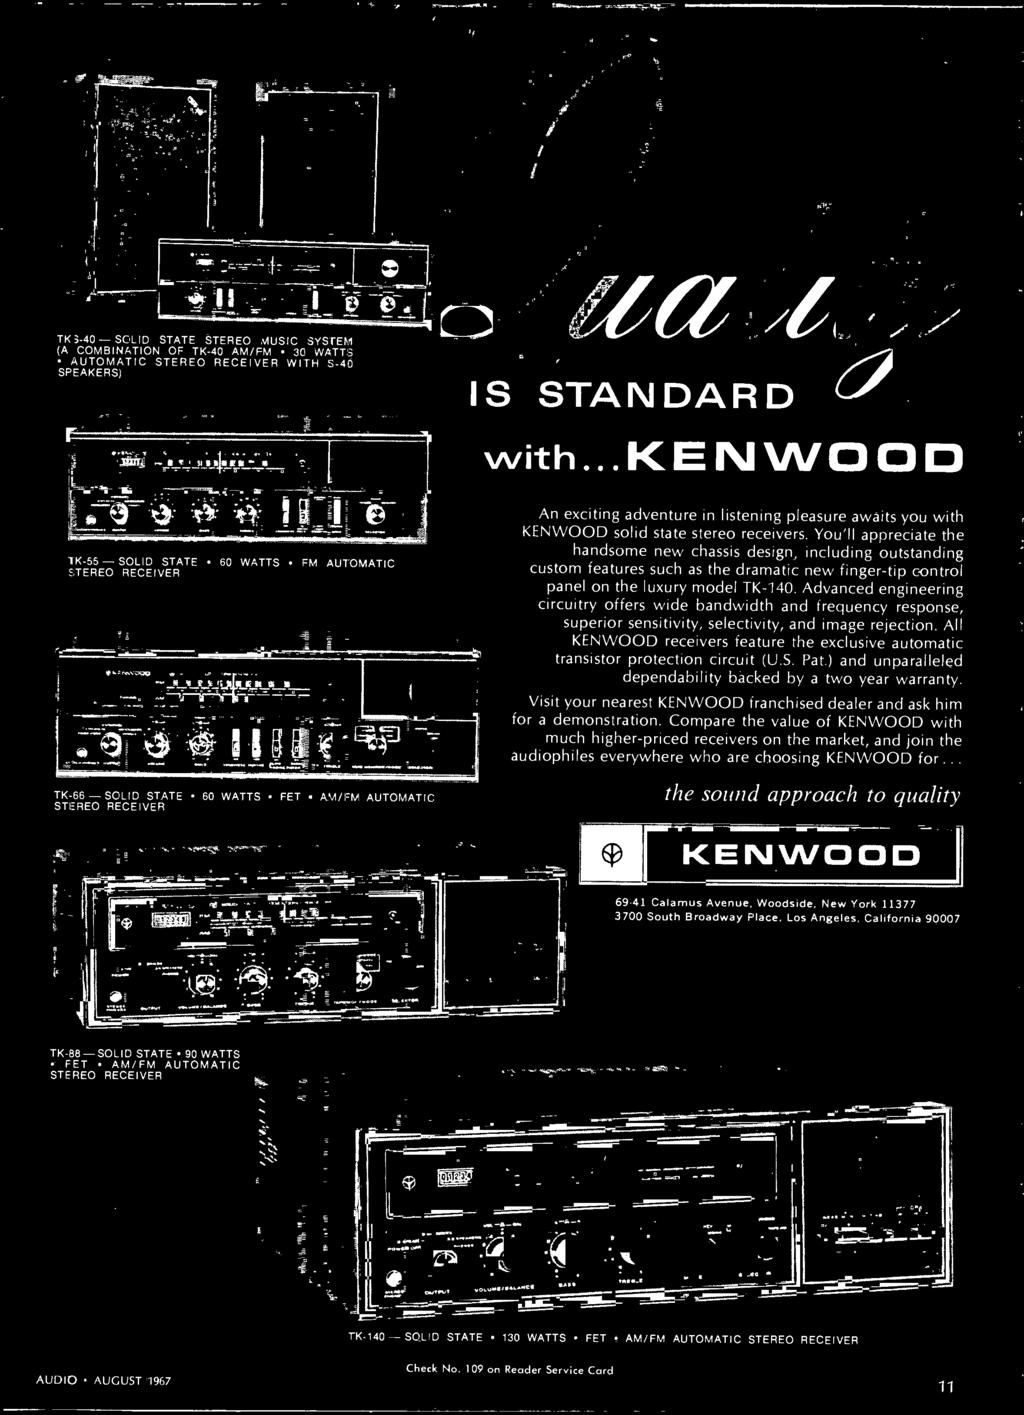 Stereo Hi Fi Preview Issue Pdf Otto Headset Wiring Diagram All Kenwood Receivers Feature The Exclusive Automatic Transistor Protection Circuit Us Pat And